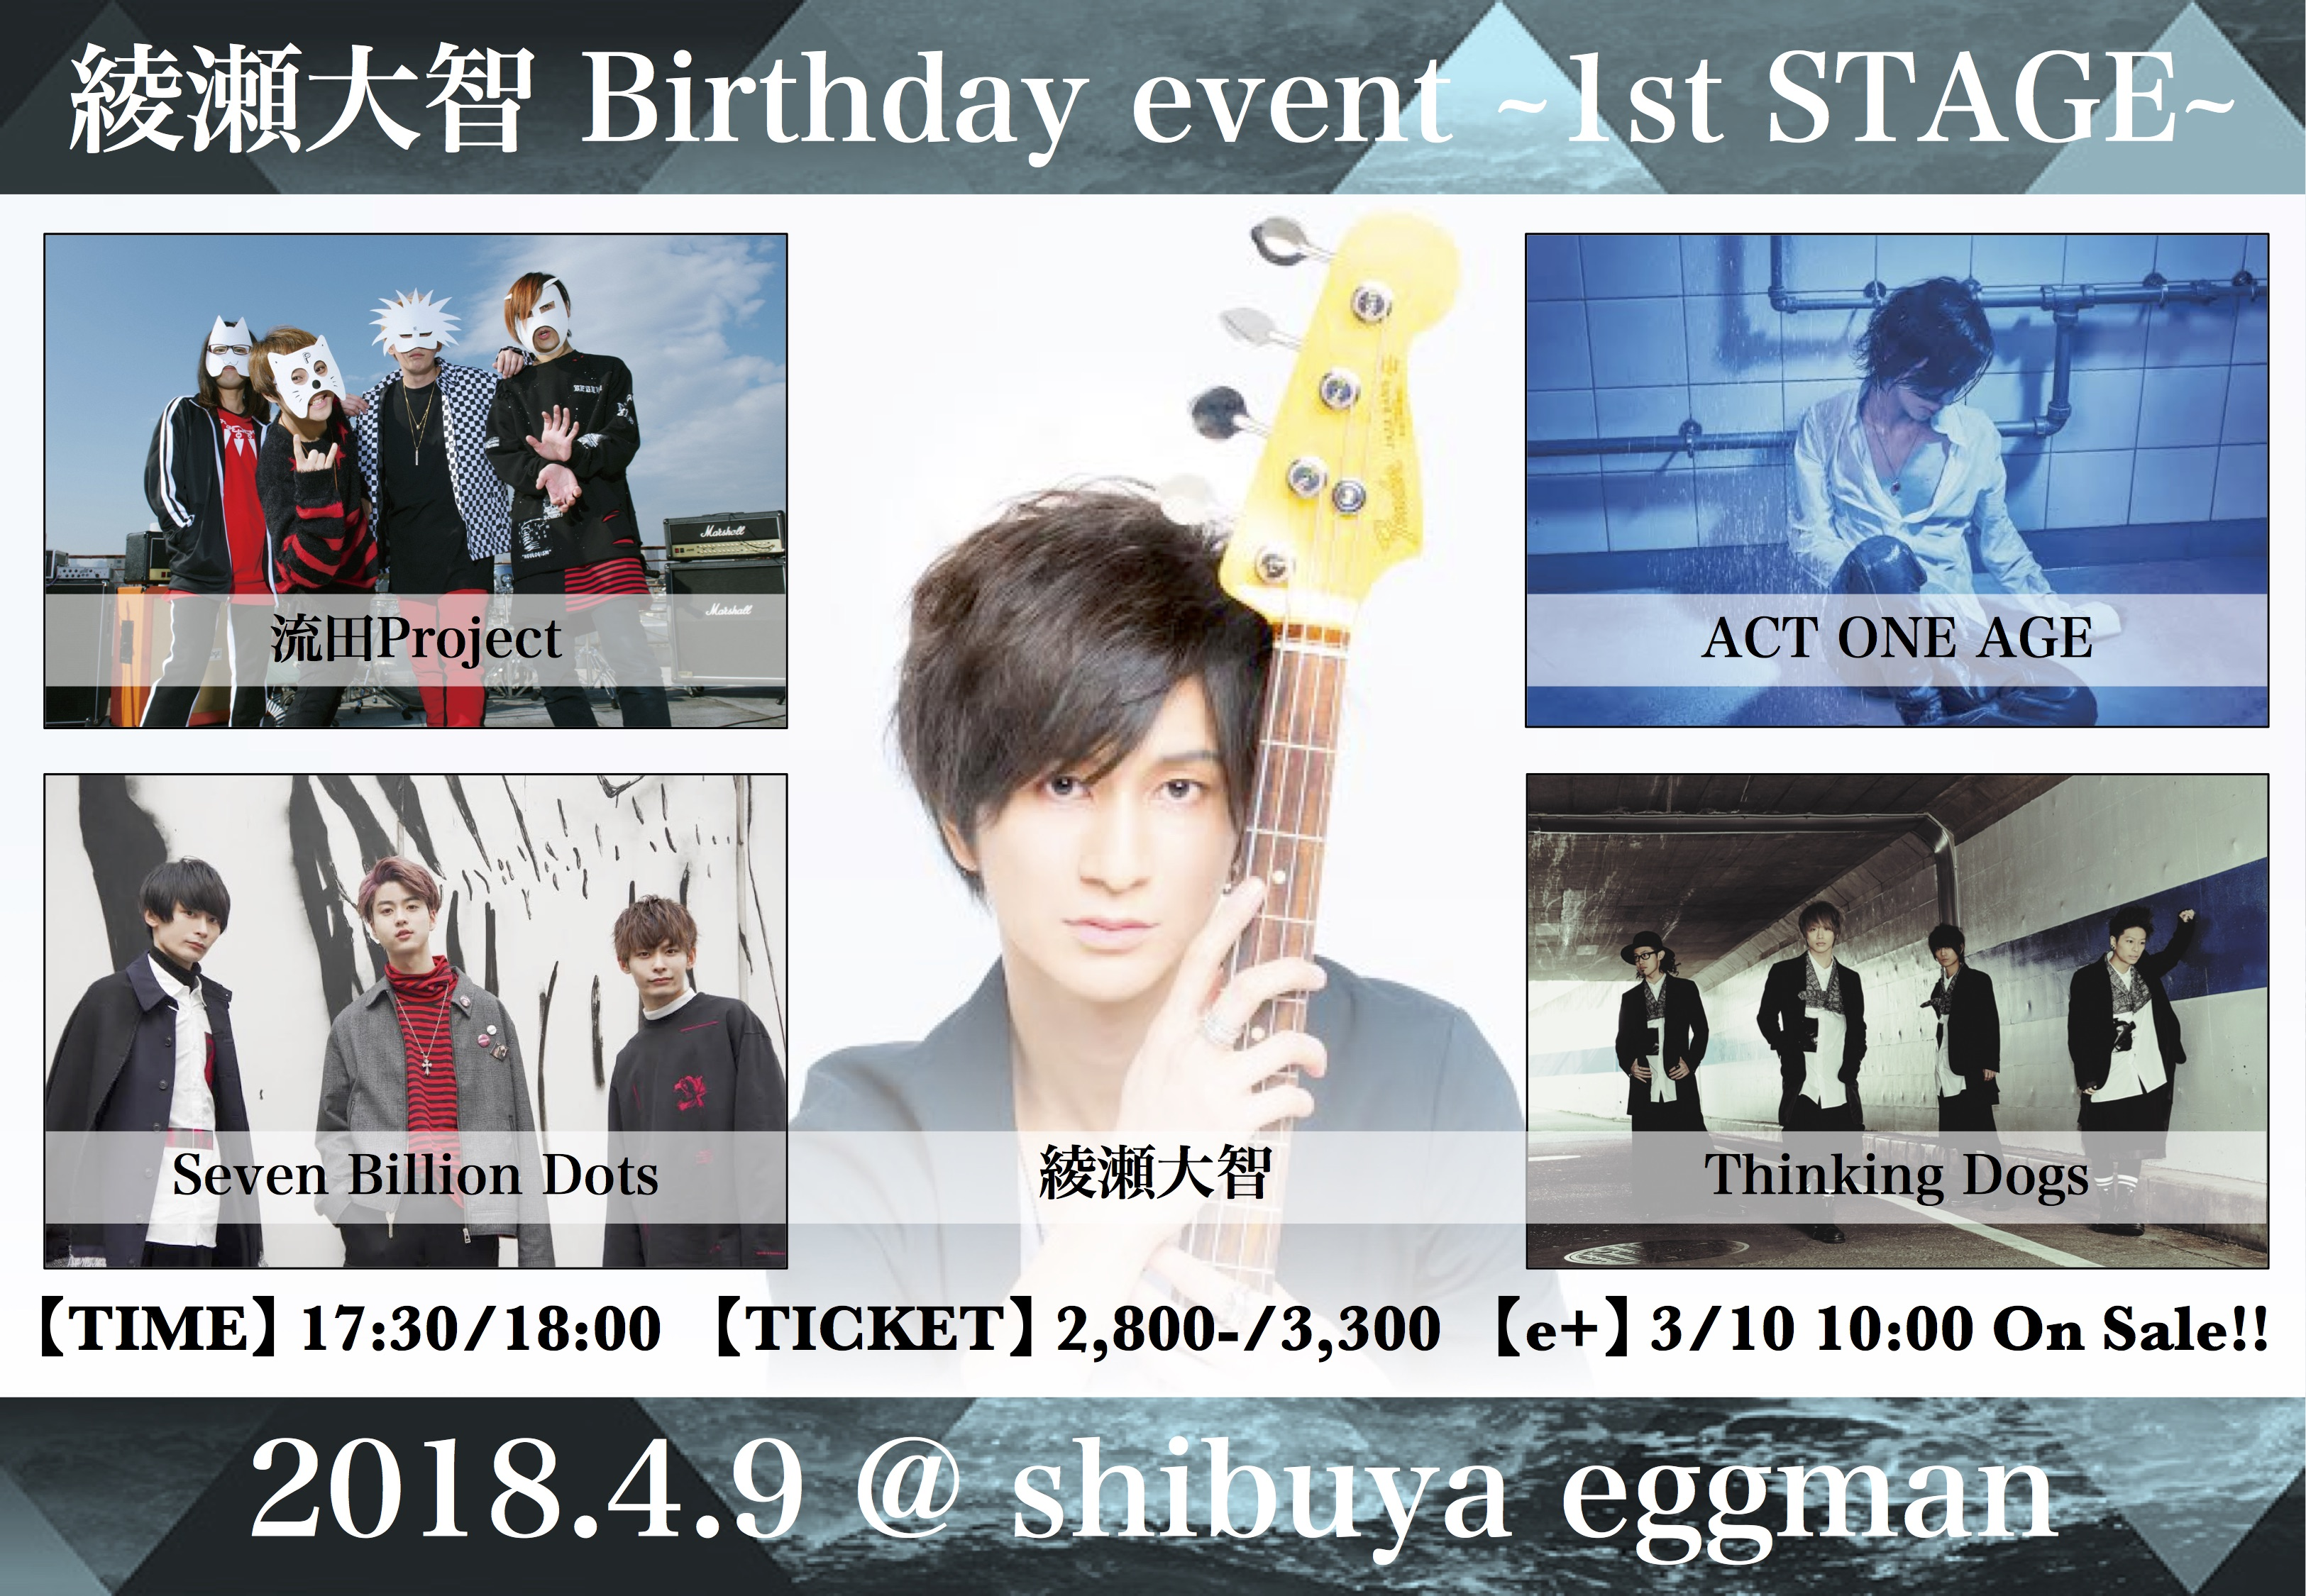 綾瀬大智 Birthday event ~1st STAGE~